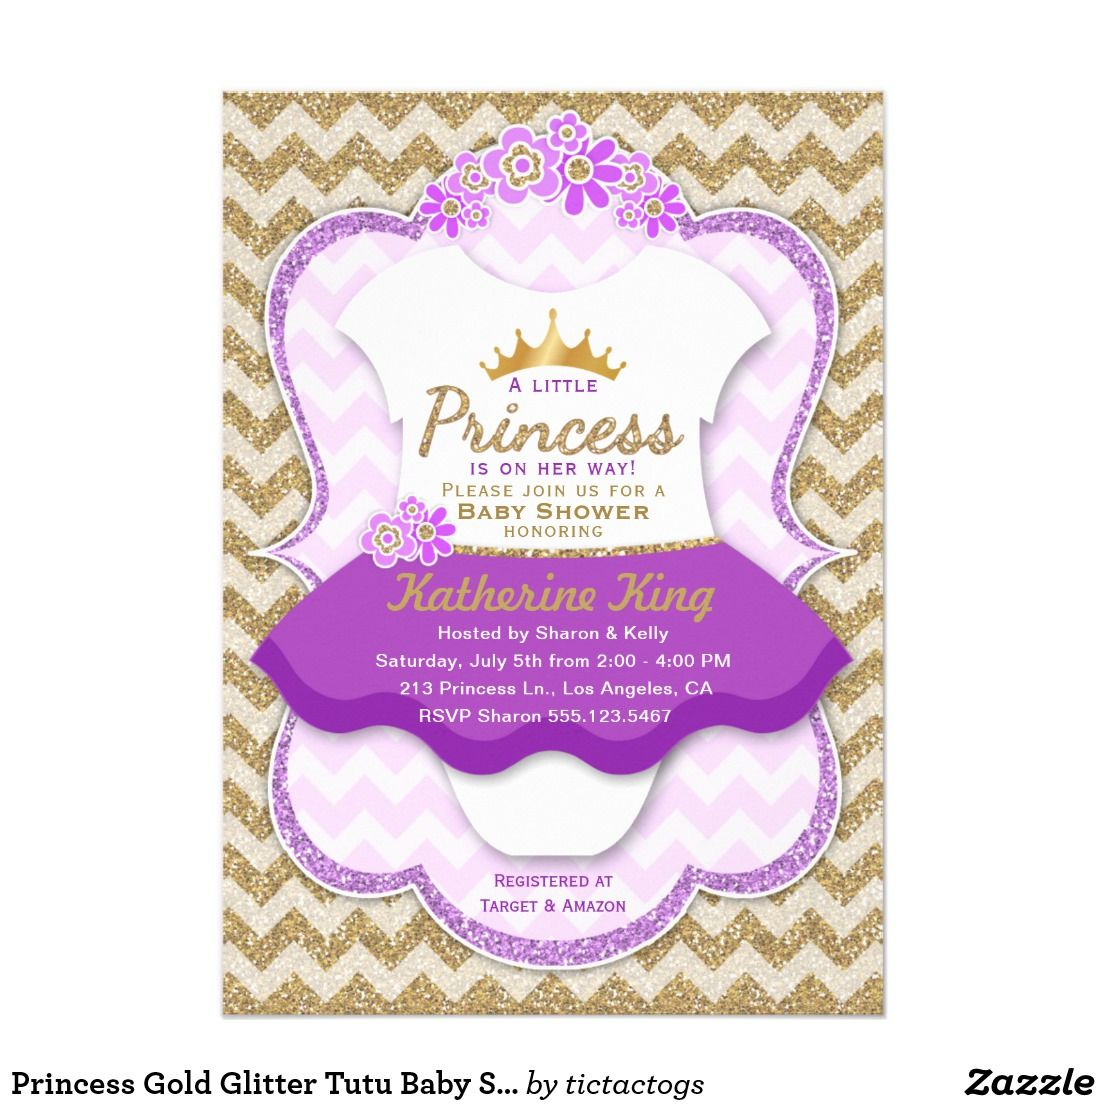 Princess Gold Glitter Tutu Baby Shower Invitation Baby Shower